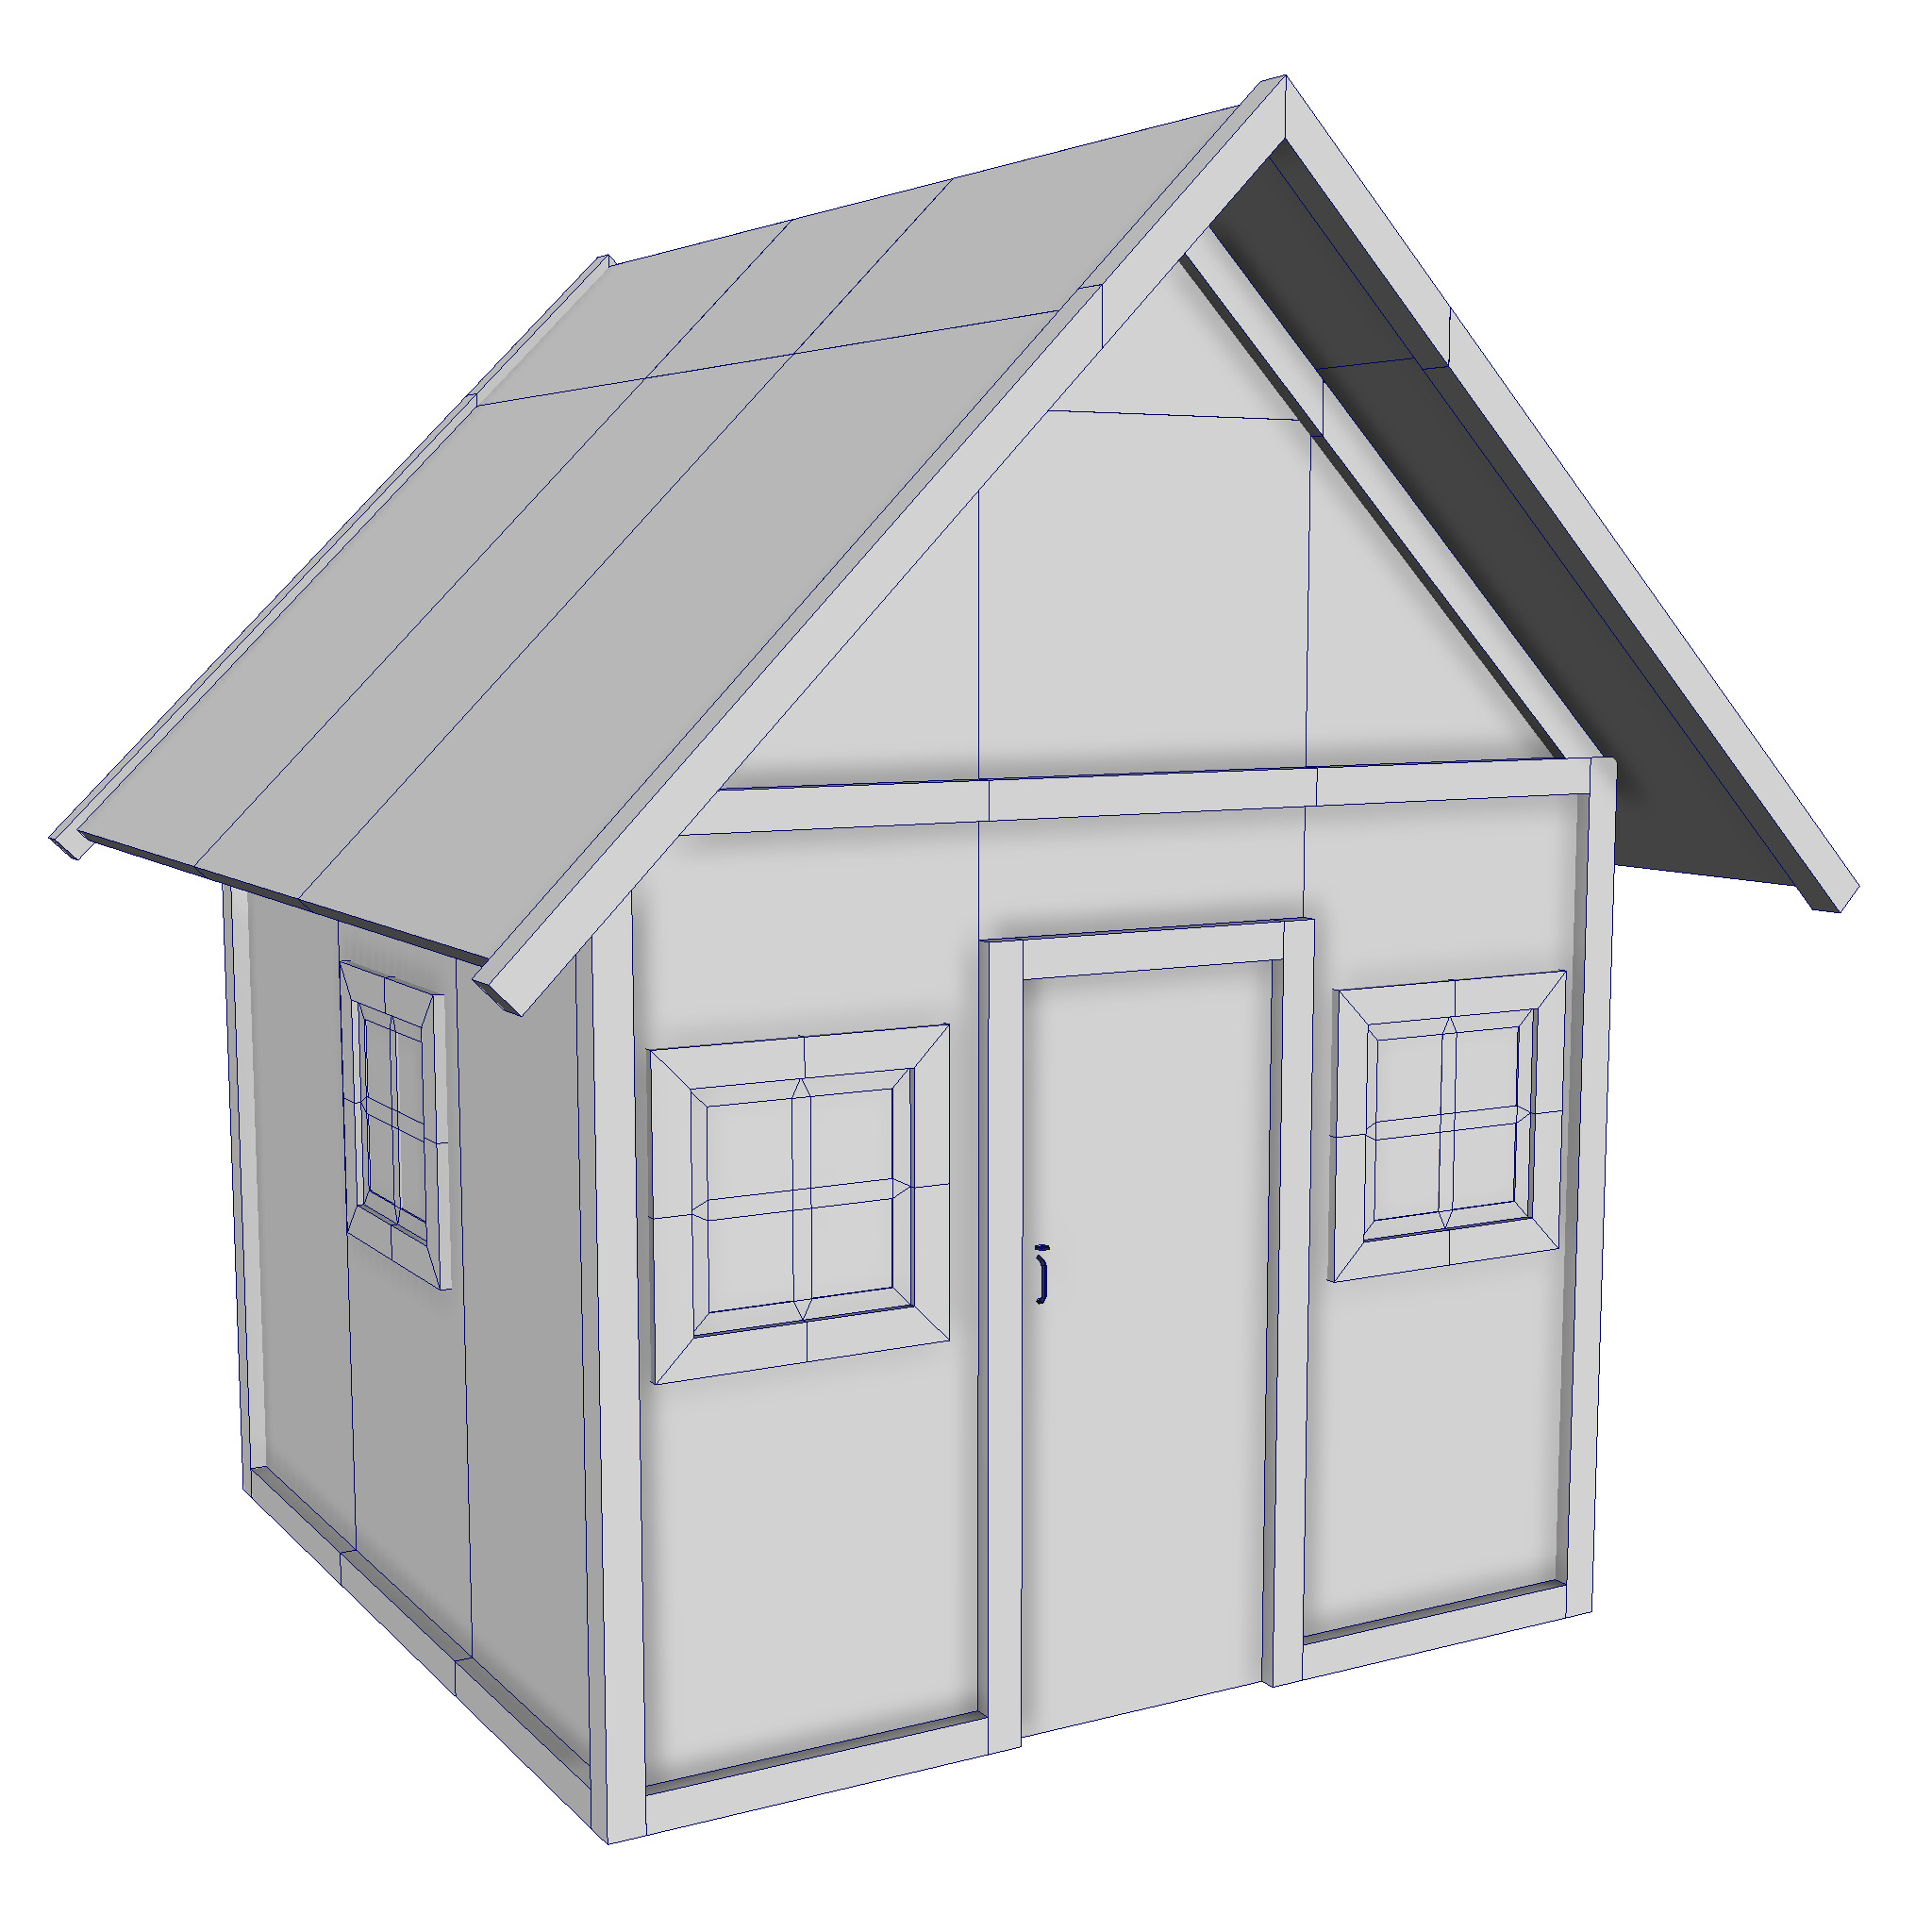 modular wood house set 3d model fbx ma mb 271458